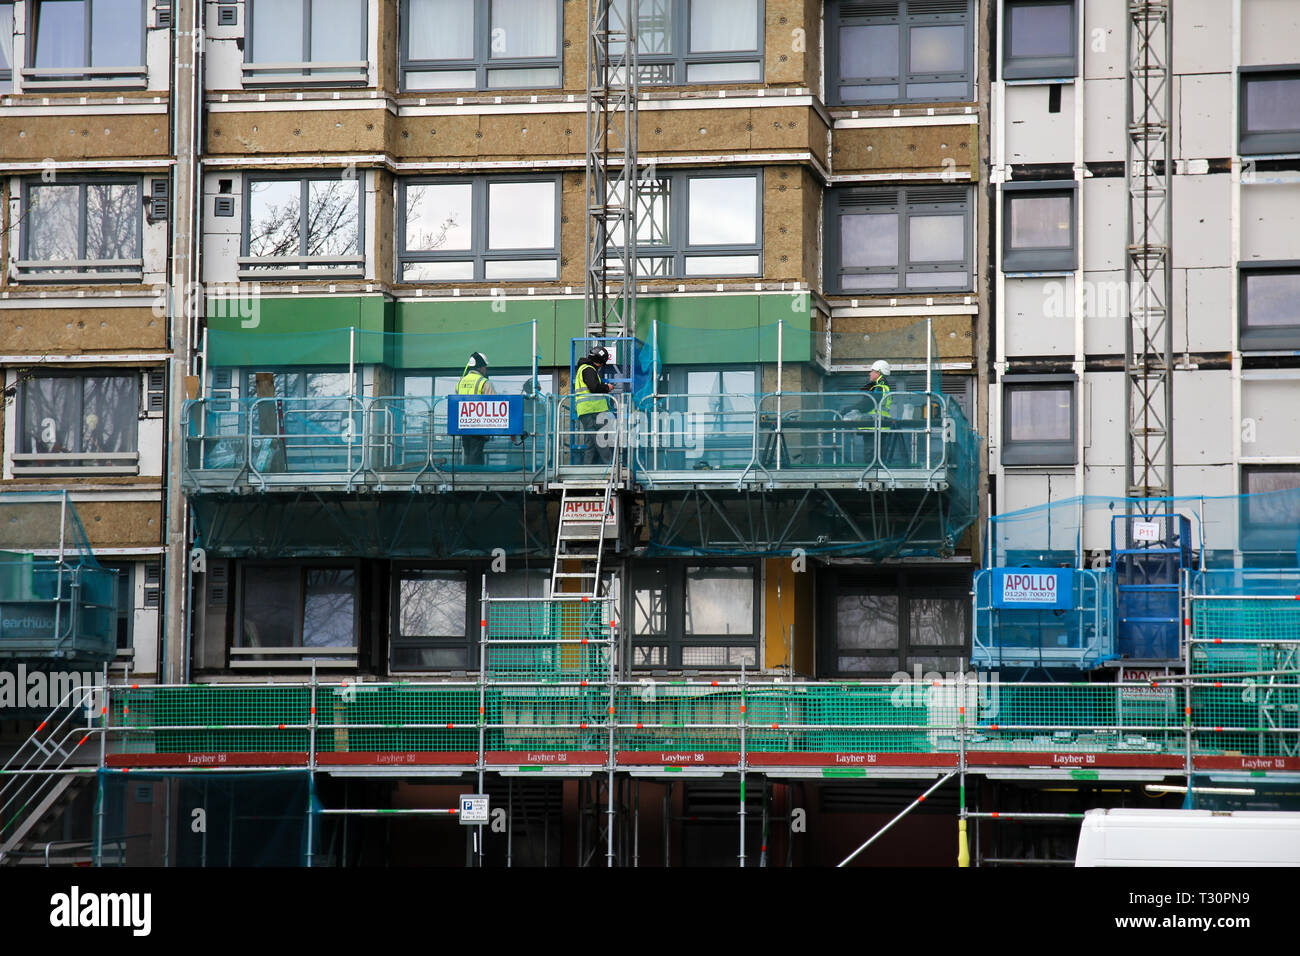 Sheffield, South Yorkshire, UK. 5th April 2019. Cladding on the Hanover Tower block in Sheffield is being replaced after failing an inspection in the wake of the Grenfell Tower fire. Credit: Alamy Live News. - Stock Image